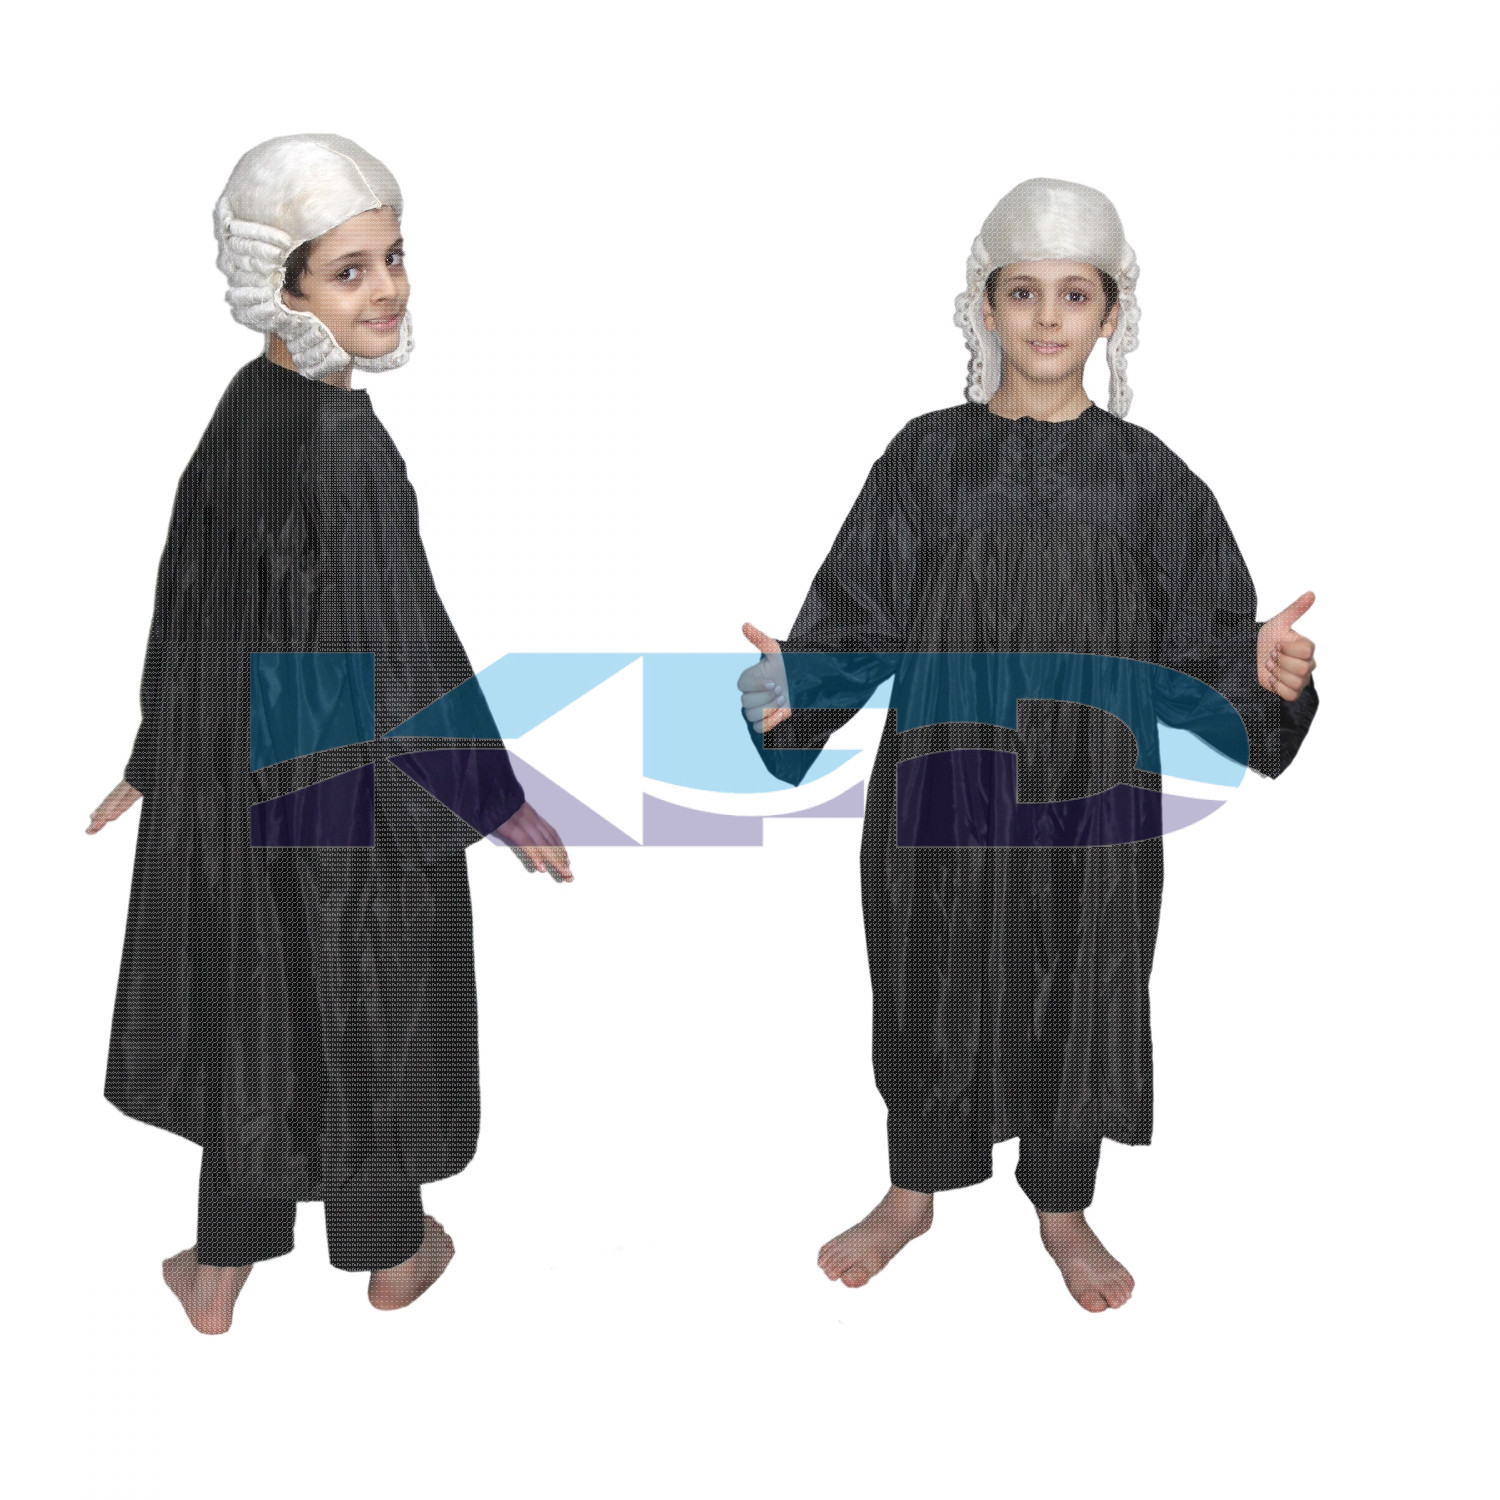 Judge Fancy Dress For Kids,Our Helper Costume For Annual Function/Theme Party/Competition/Stage Shows Dress